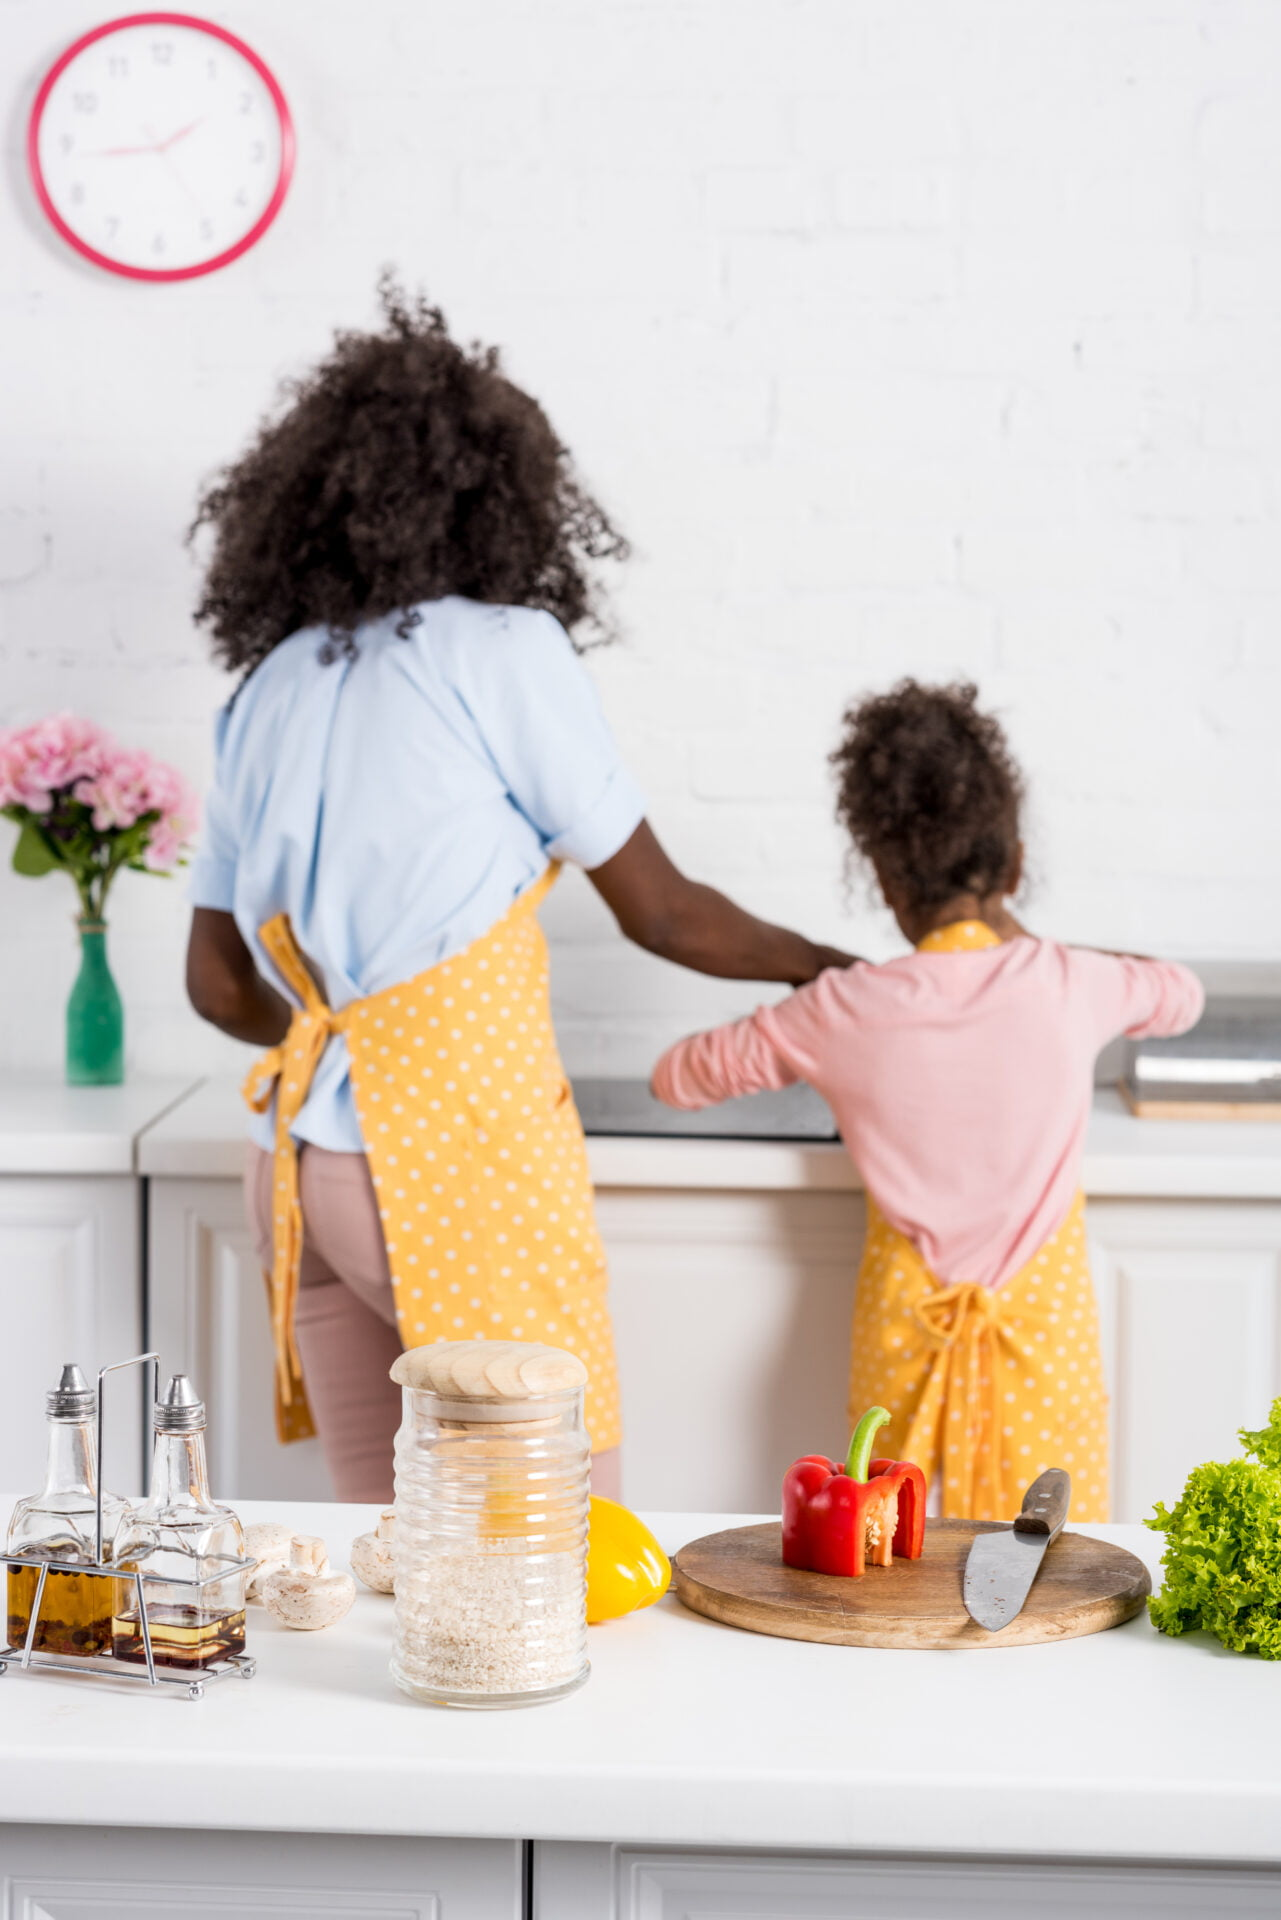 Black mother and daughter baking in the kitchen